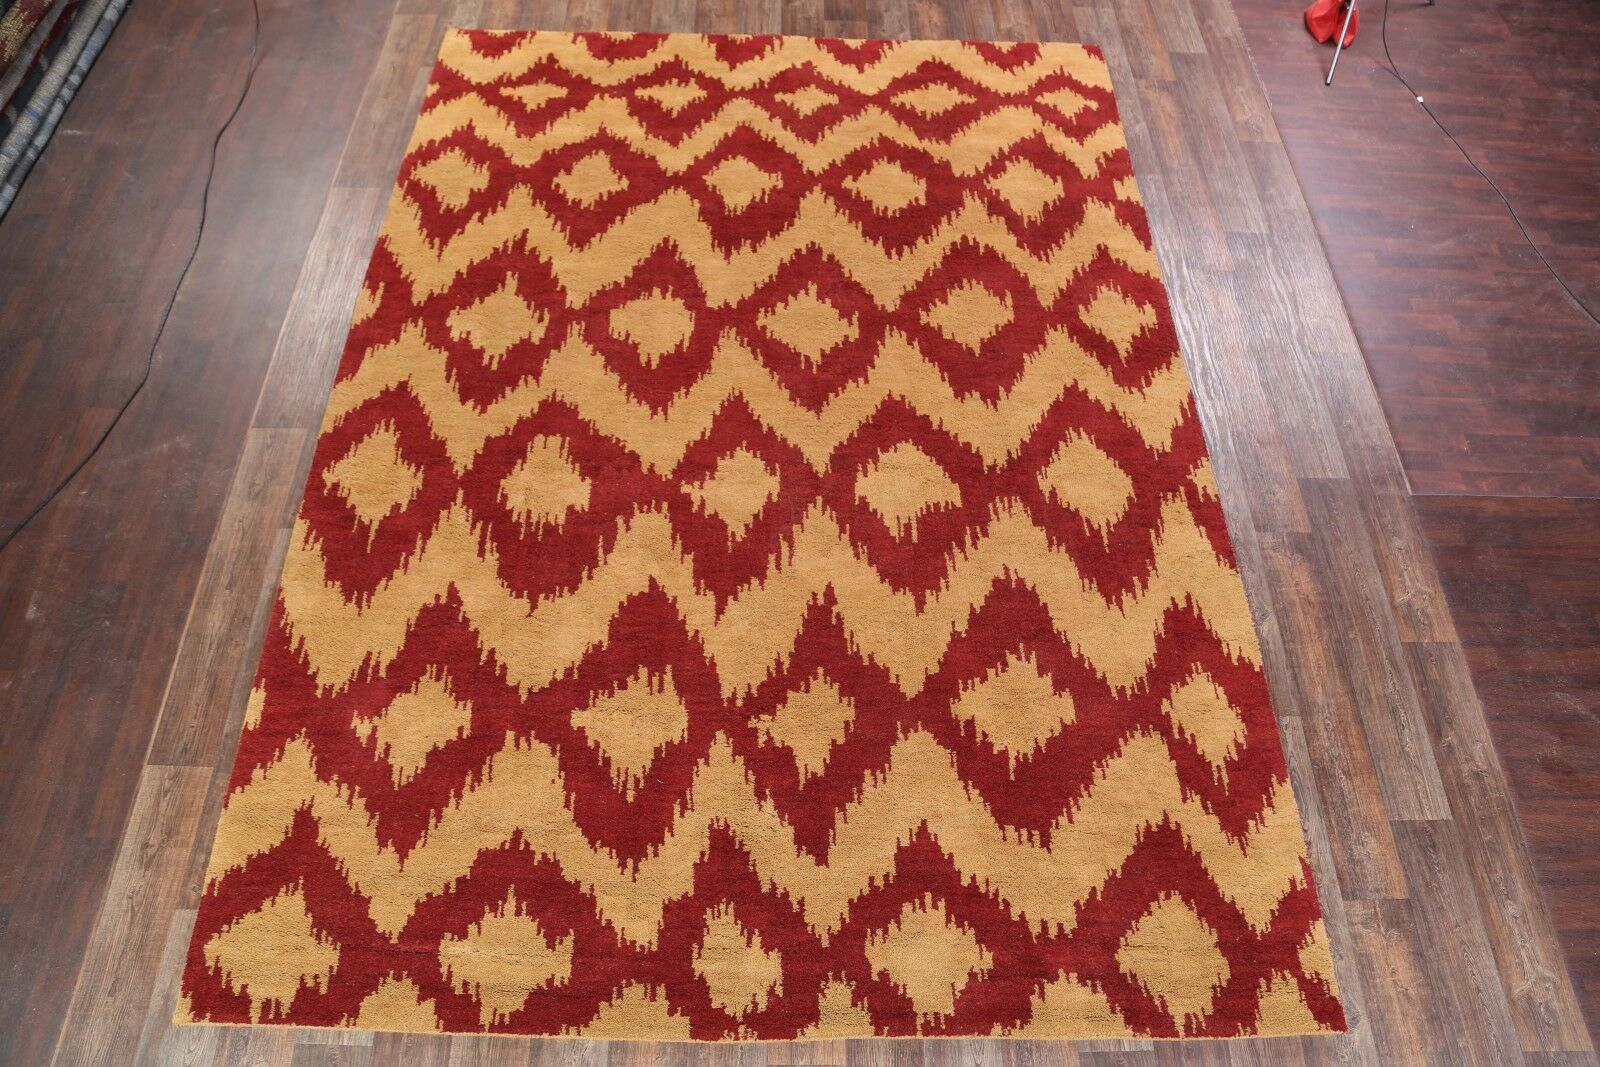 Lux Traditional Moroccan Oriental Hand-Knotted Wool Red/Yellow Area Rug